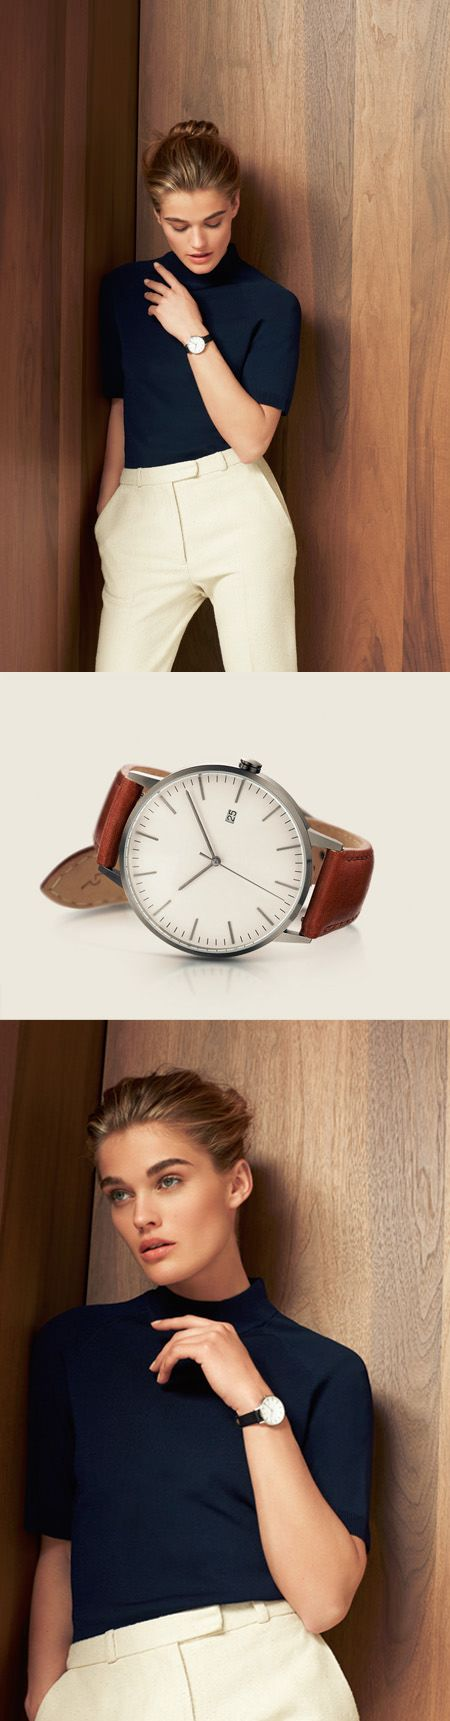 Quality and style combined, the Linjer watch emits an air of minimalist sophistication. The gunmetal casing, tan strap of the finest leather, and Swiss movement are skillfully combined in a beautiful Scandinavian design. More on Linjer.co